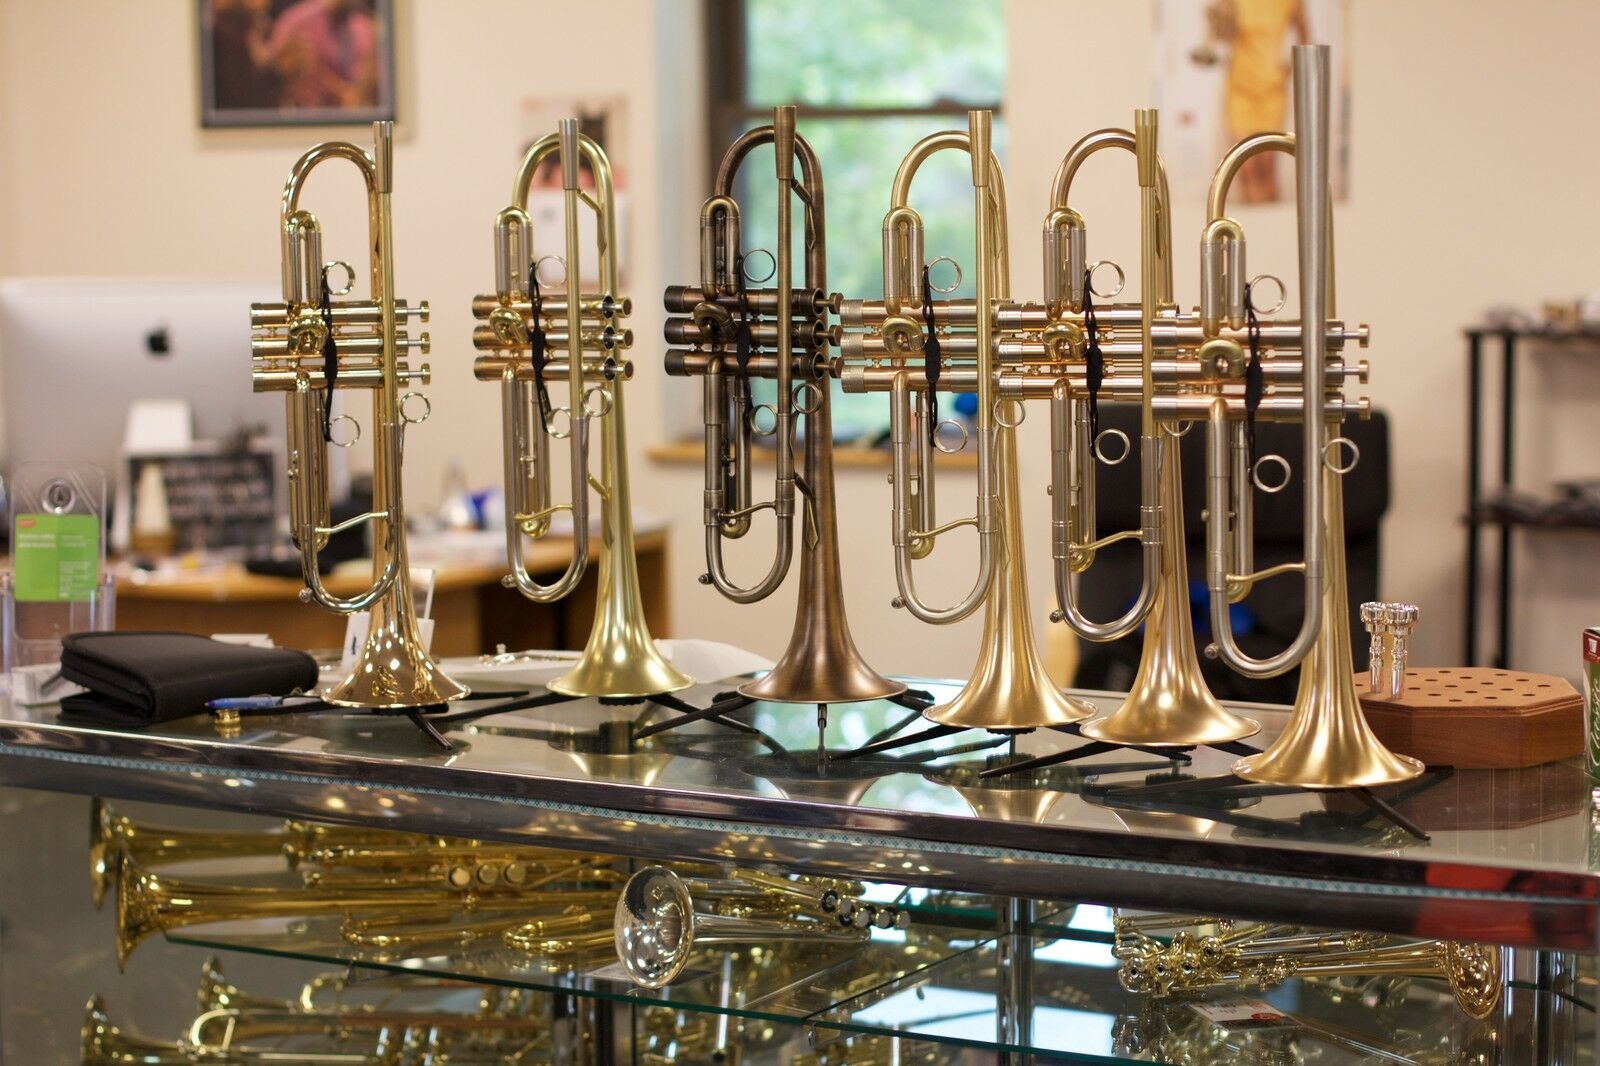 Austin Custom Brass eBay outlet